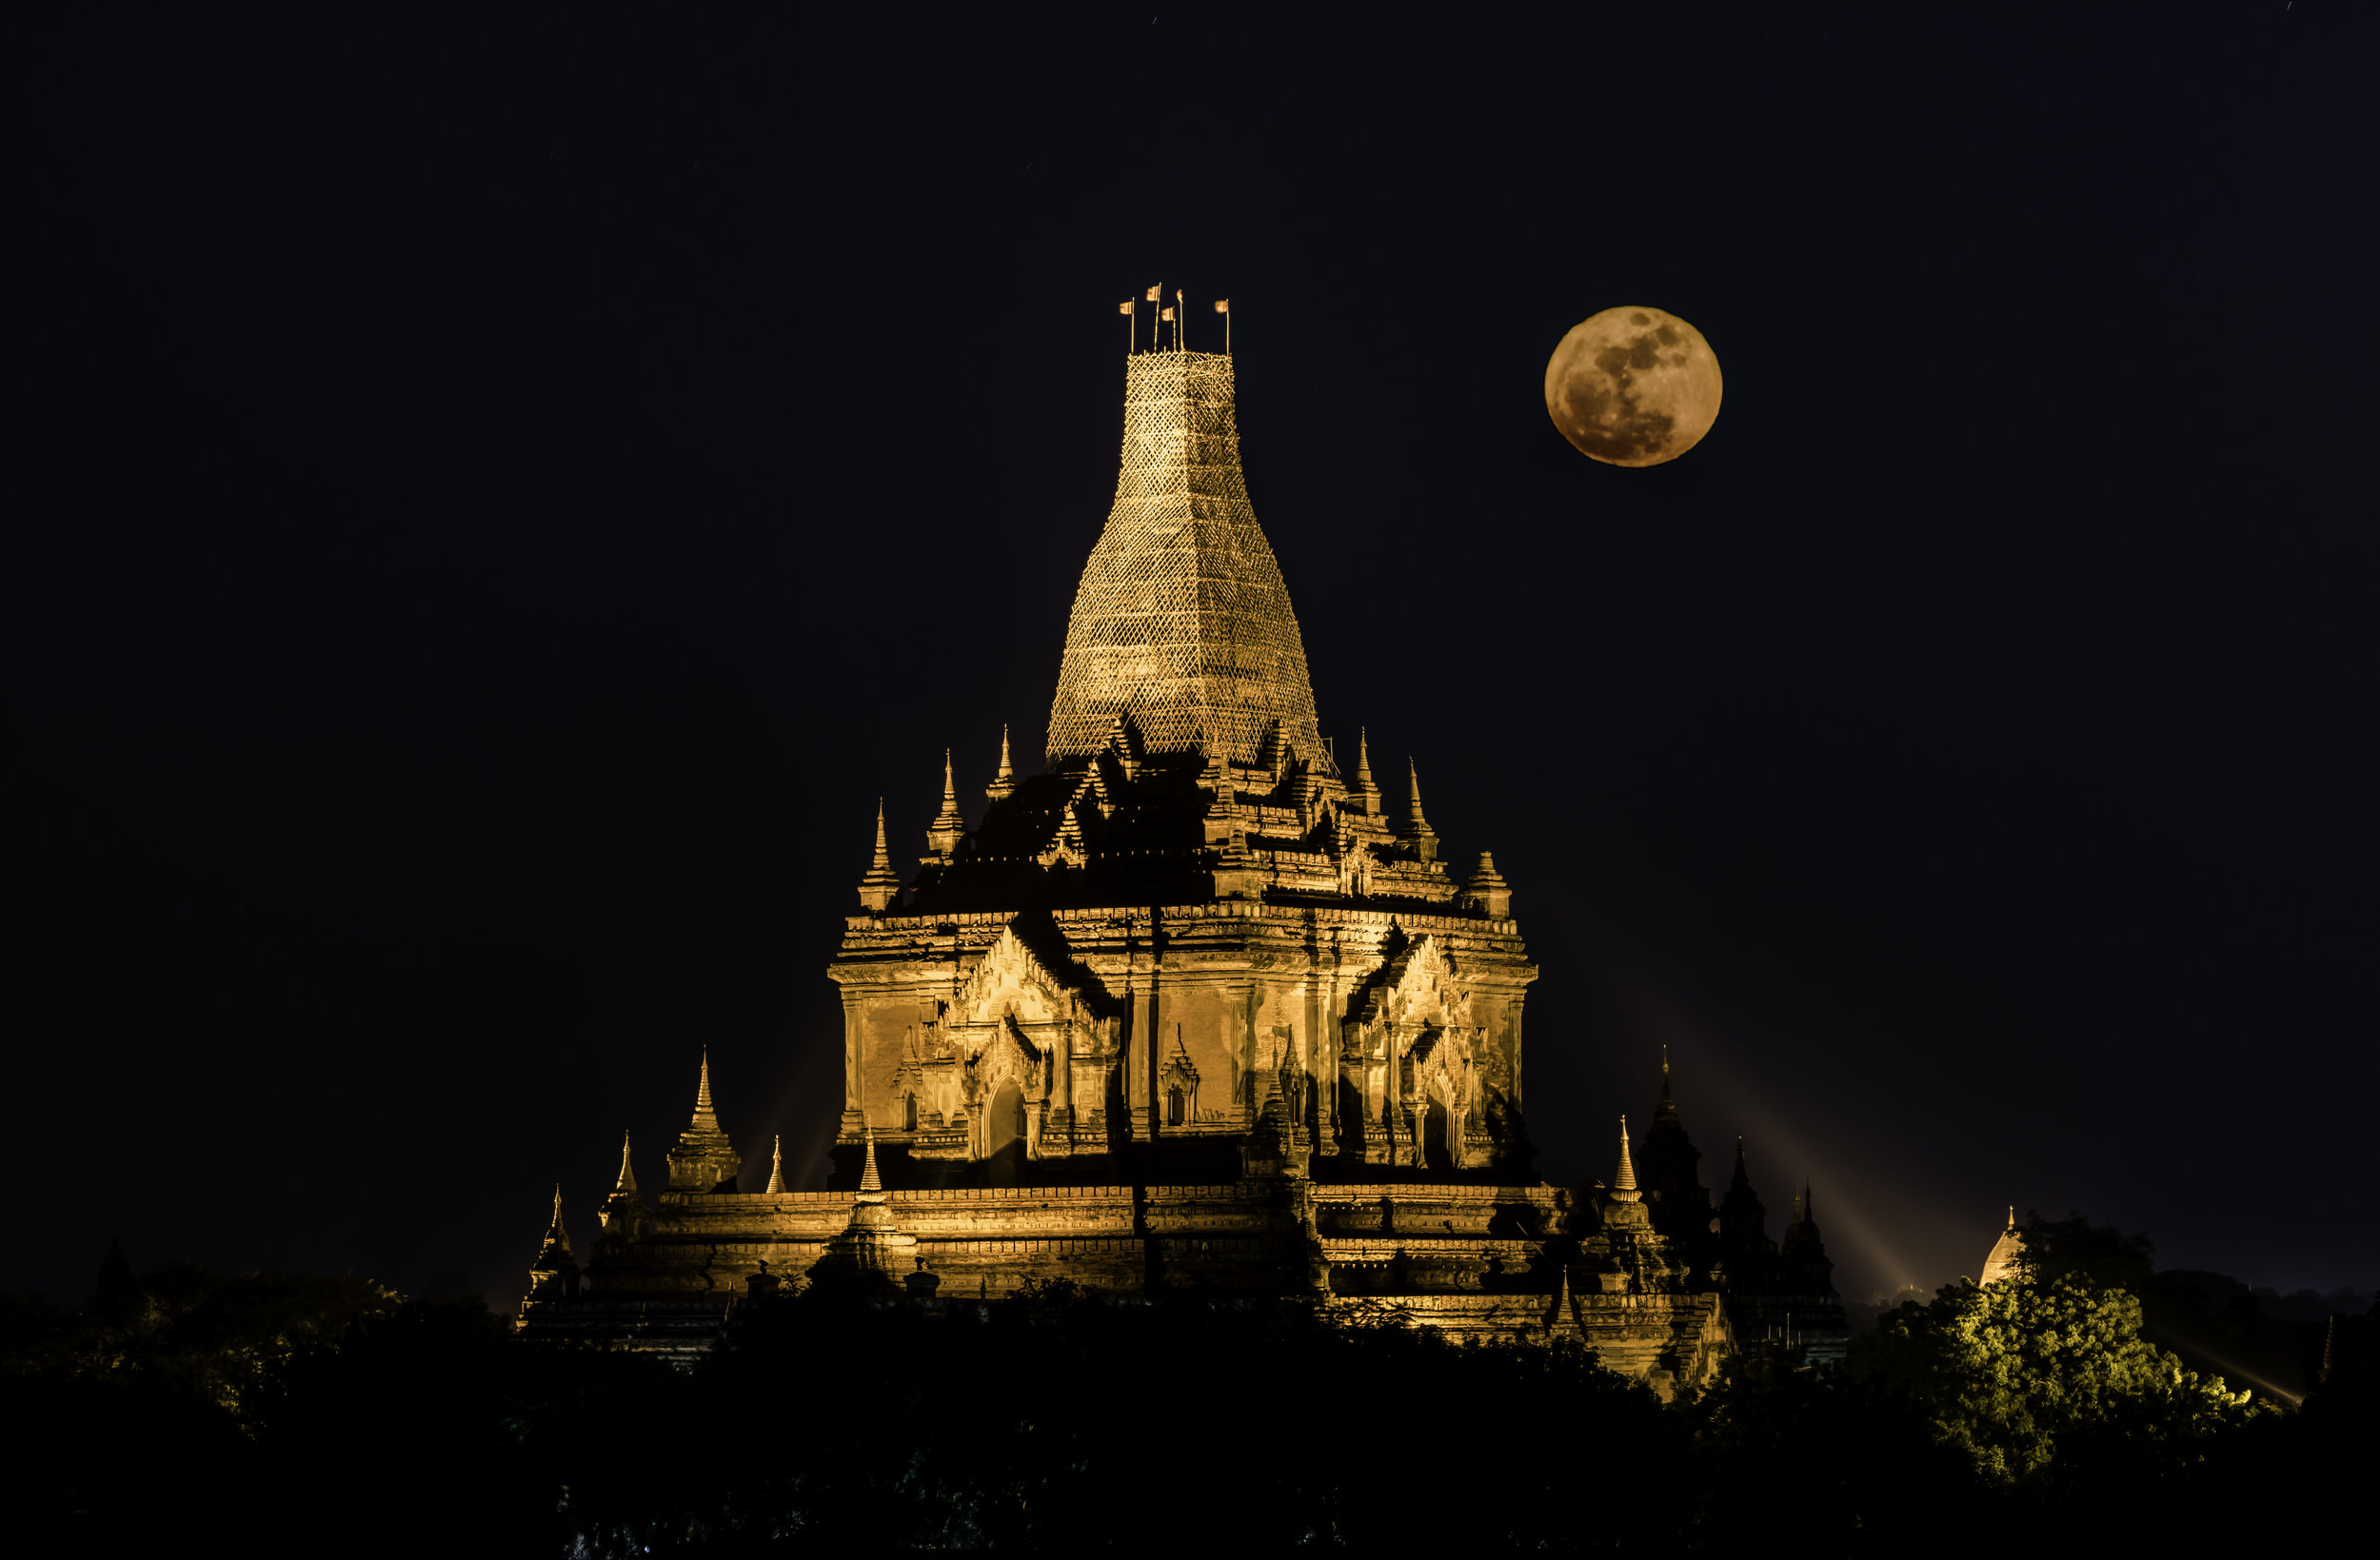 Full moon!  A Lo Daw Pyai Pagoda during fullmoon rise.